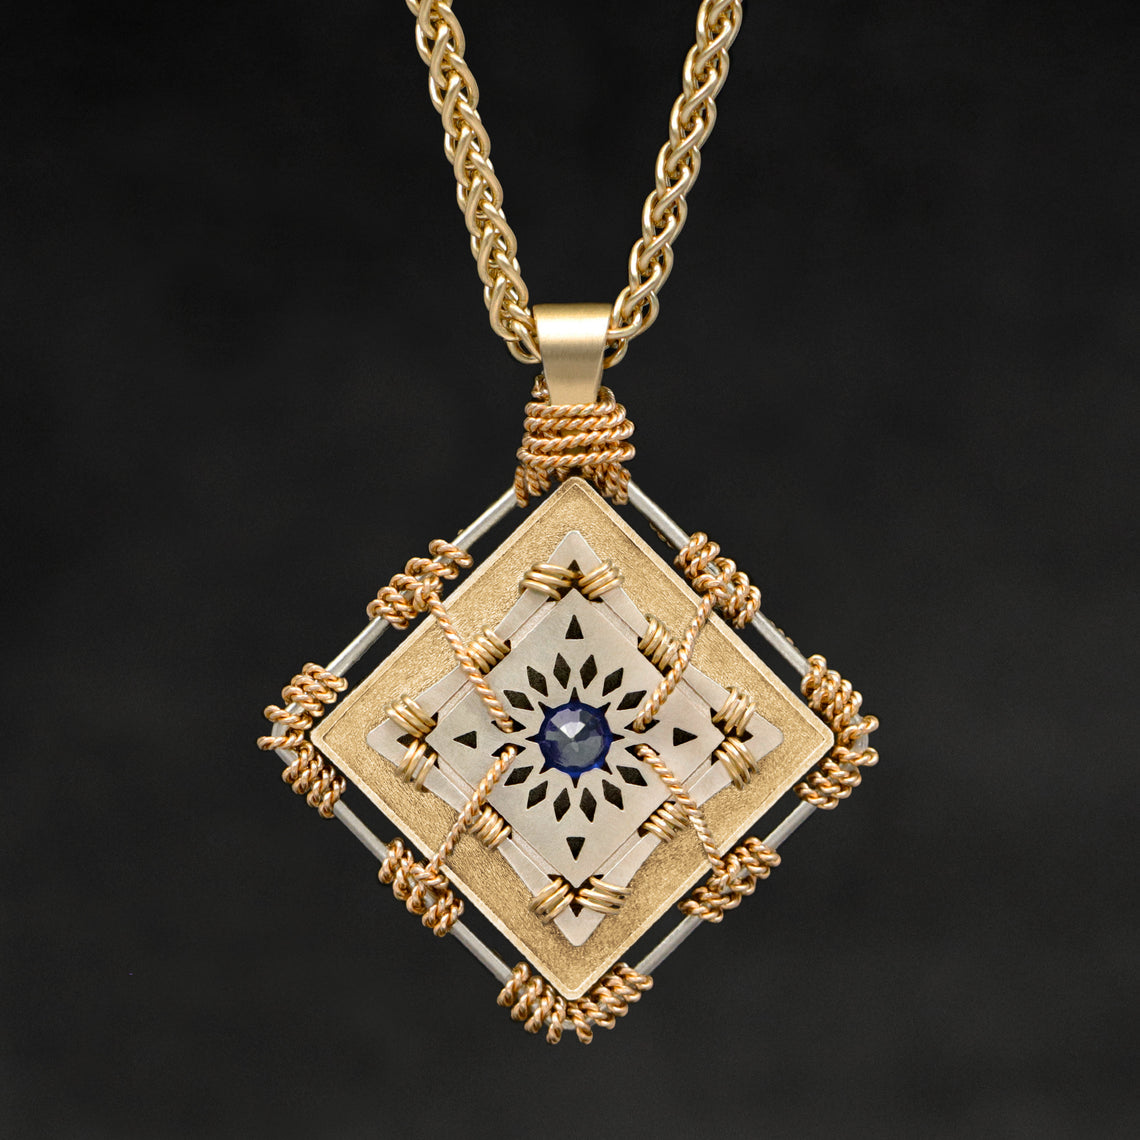 Hanging front view of 18K Yellow Gold and 18K Palladium White Gold and Sapphire Sewn Gold Metal Confidence pendant and chain with endless loop necklace featuring 4 pointed gear by Caps Brothers